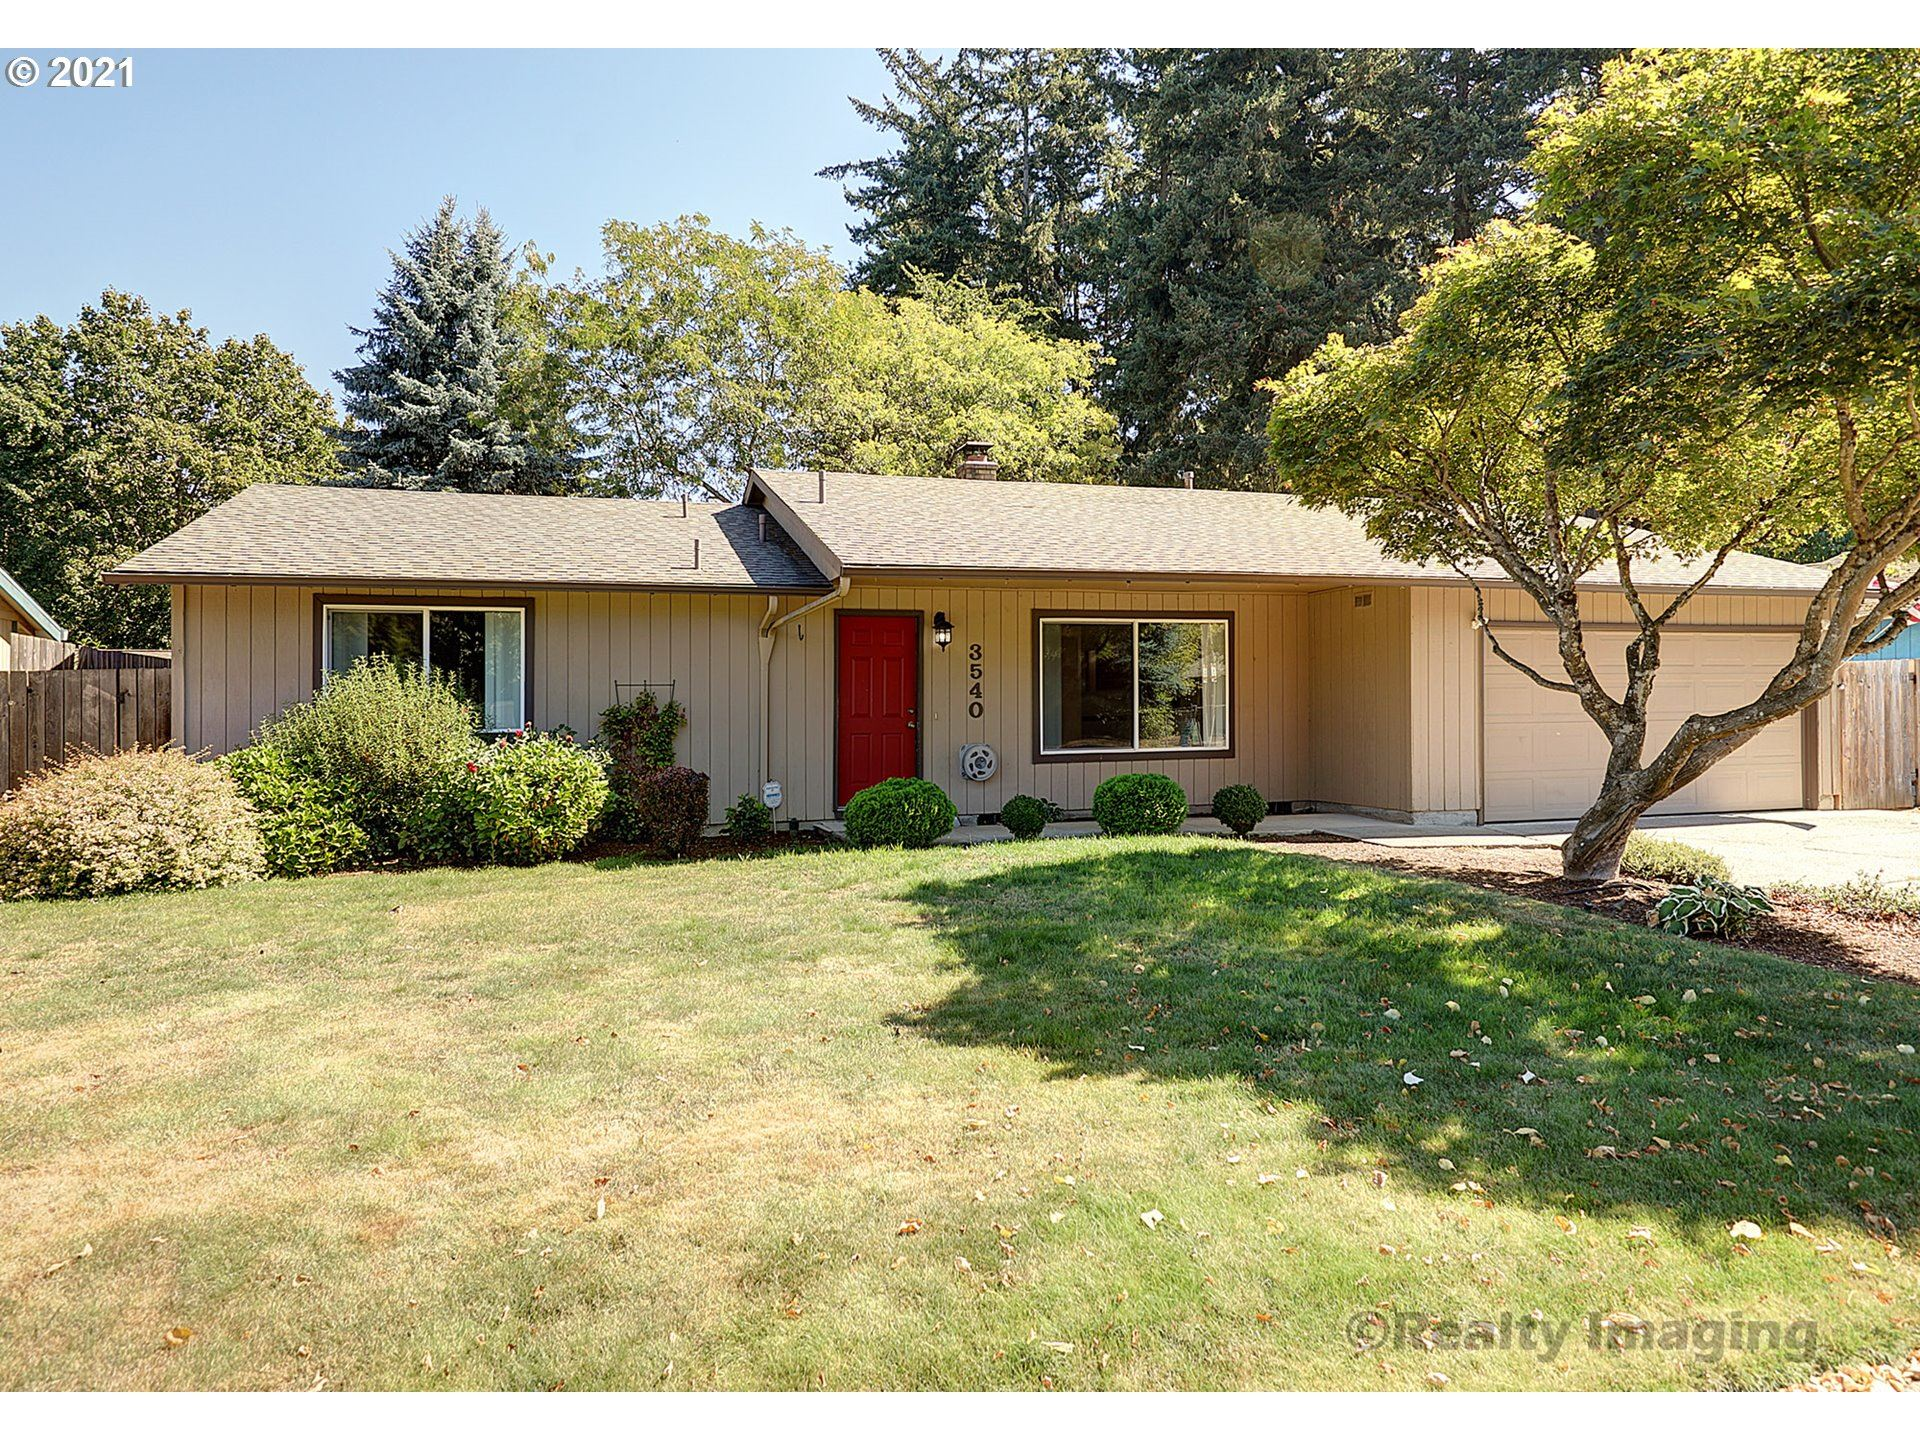 3540 SE 156TH AVE, Portland, OR 97236 - MLS#: 21189624